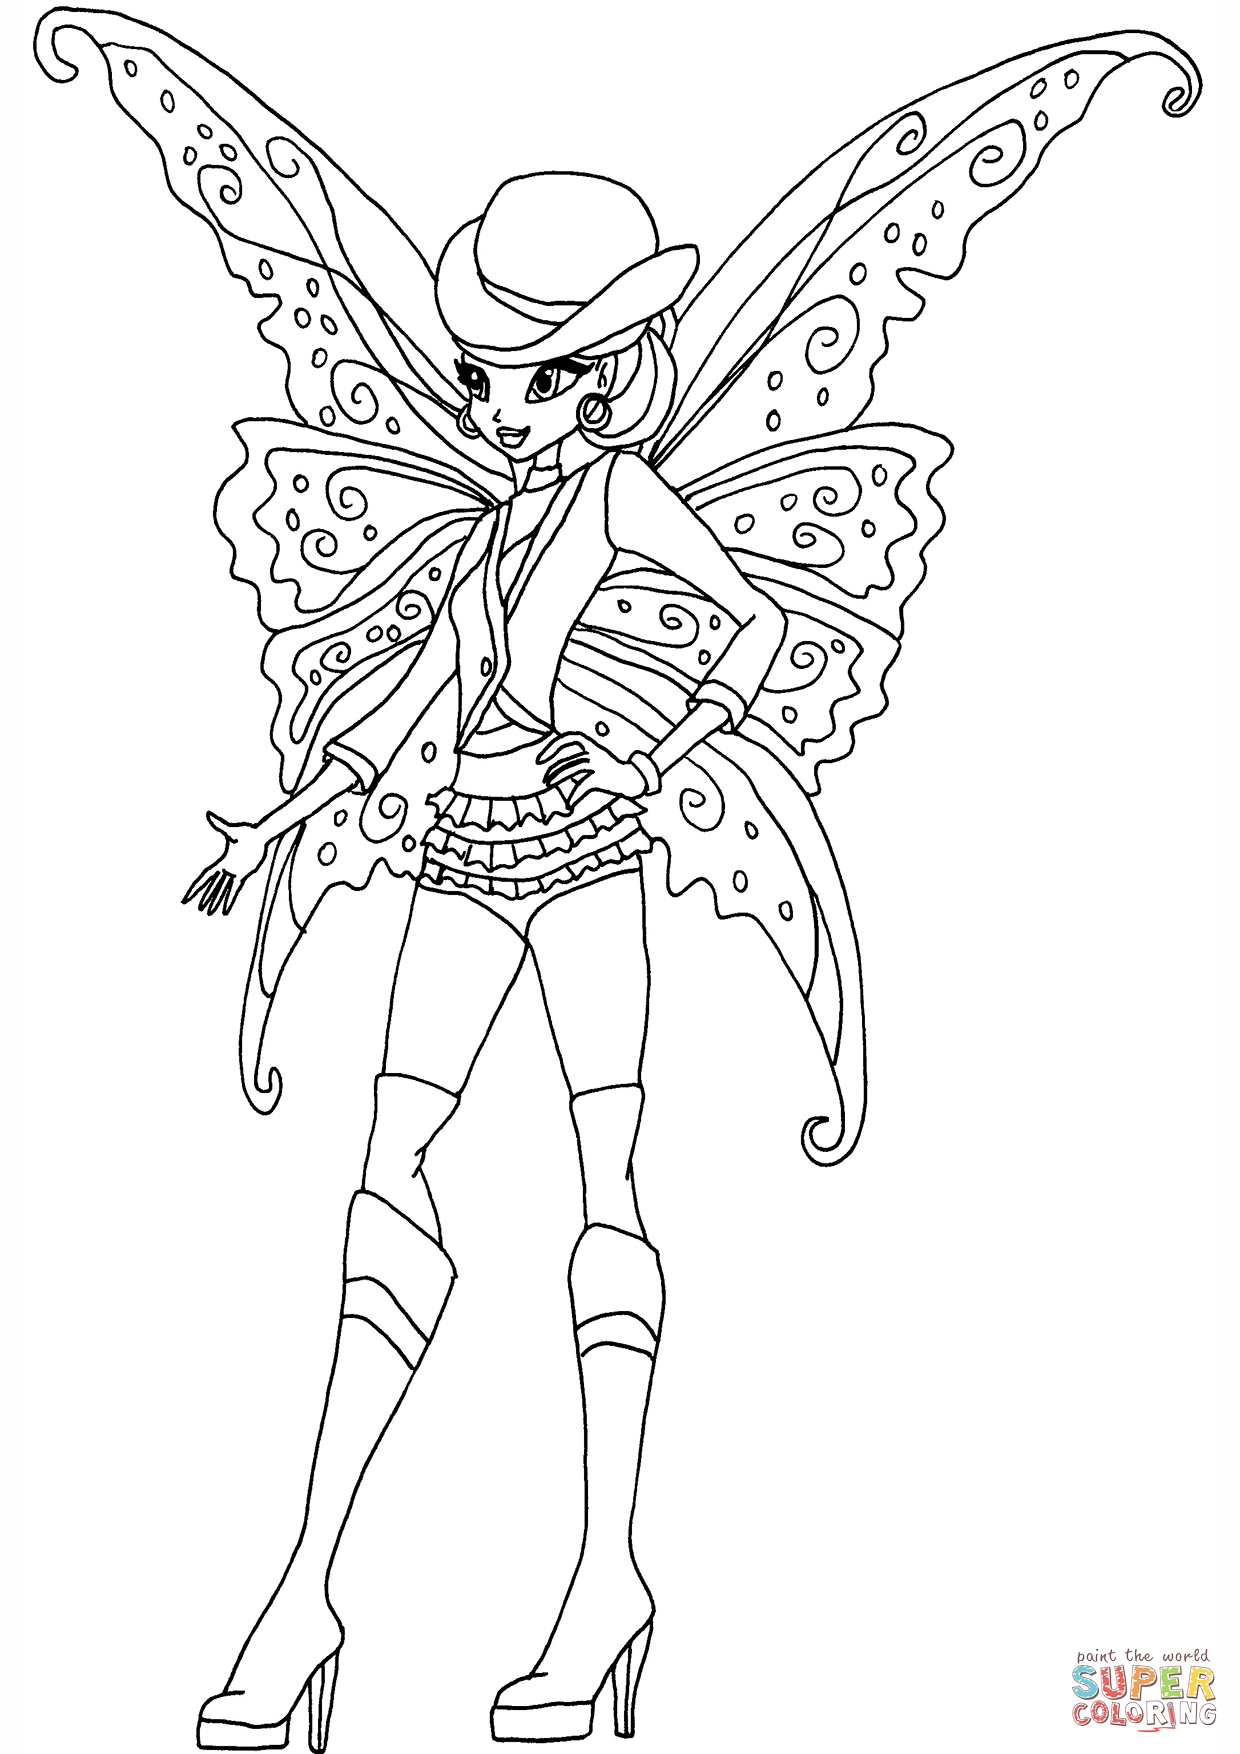 Gothic Stella Coloring Page Free Printable Coloring Pages